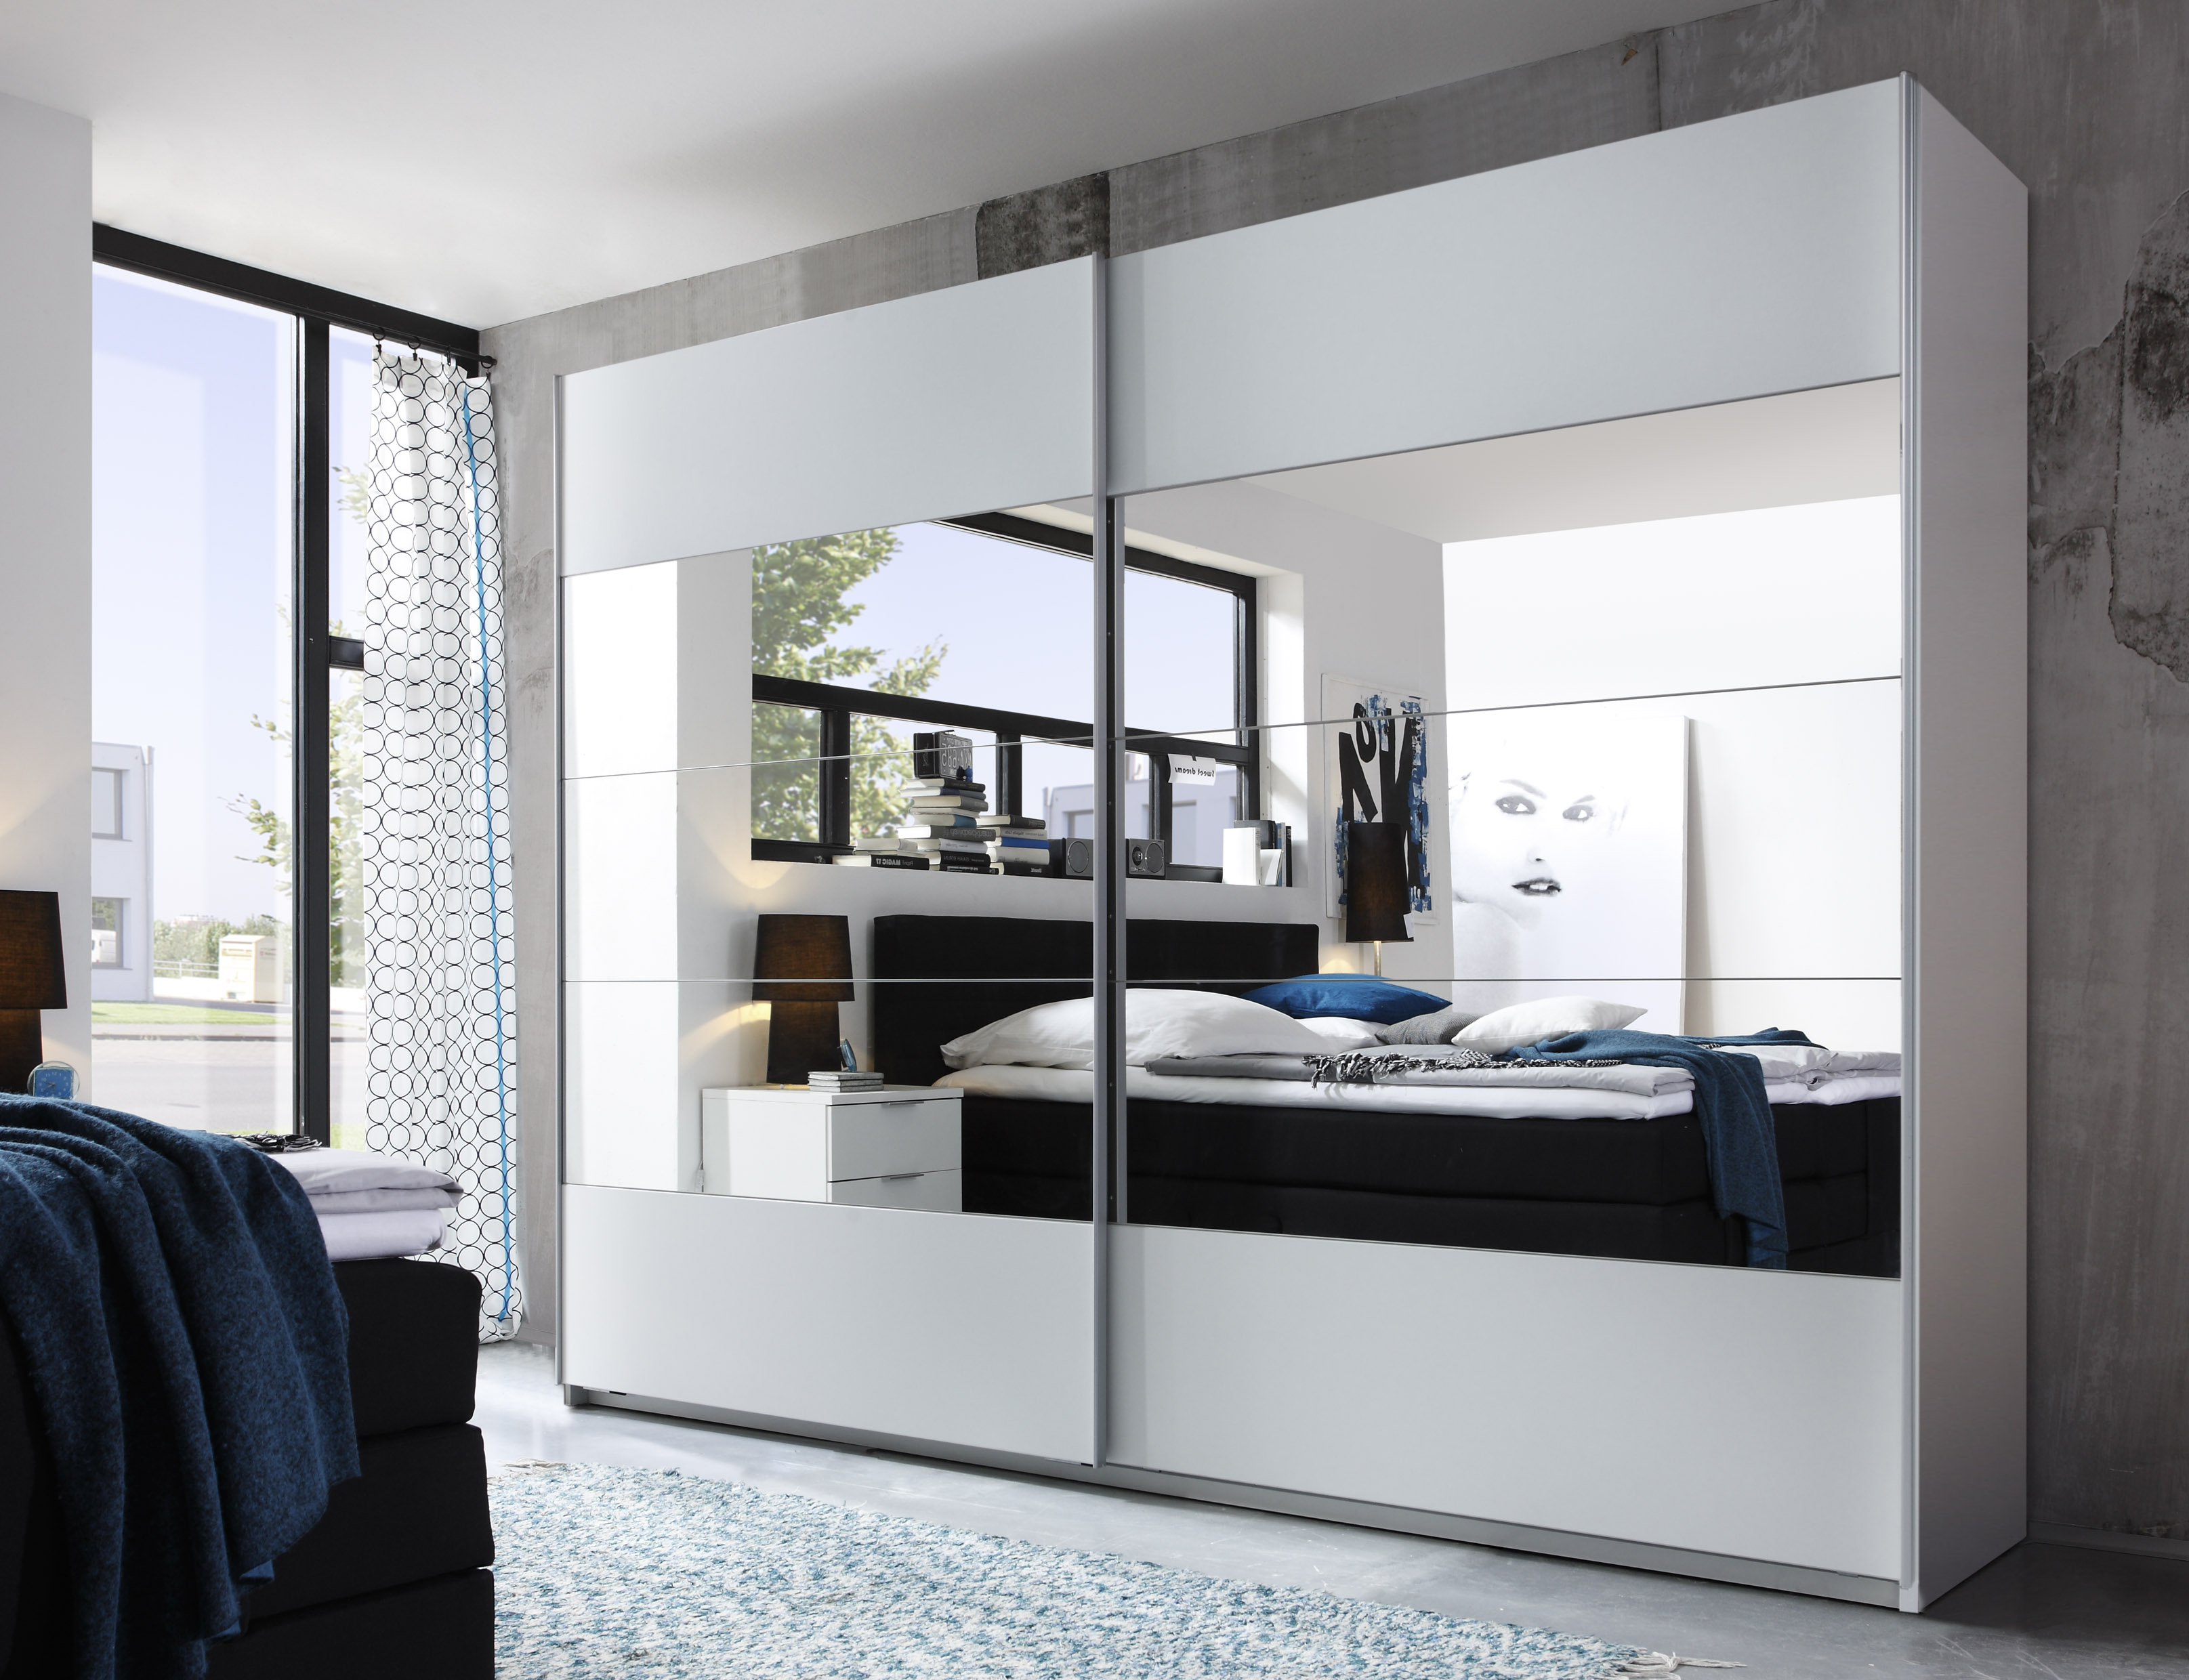 sliding wardrobe doors penta 5 wardrobe bedroom closet white with mirror ebay